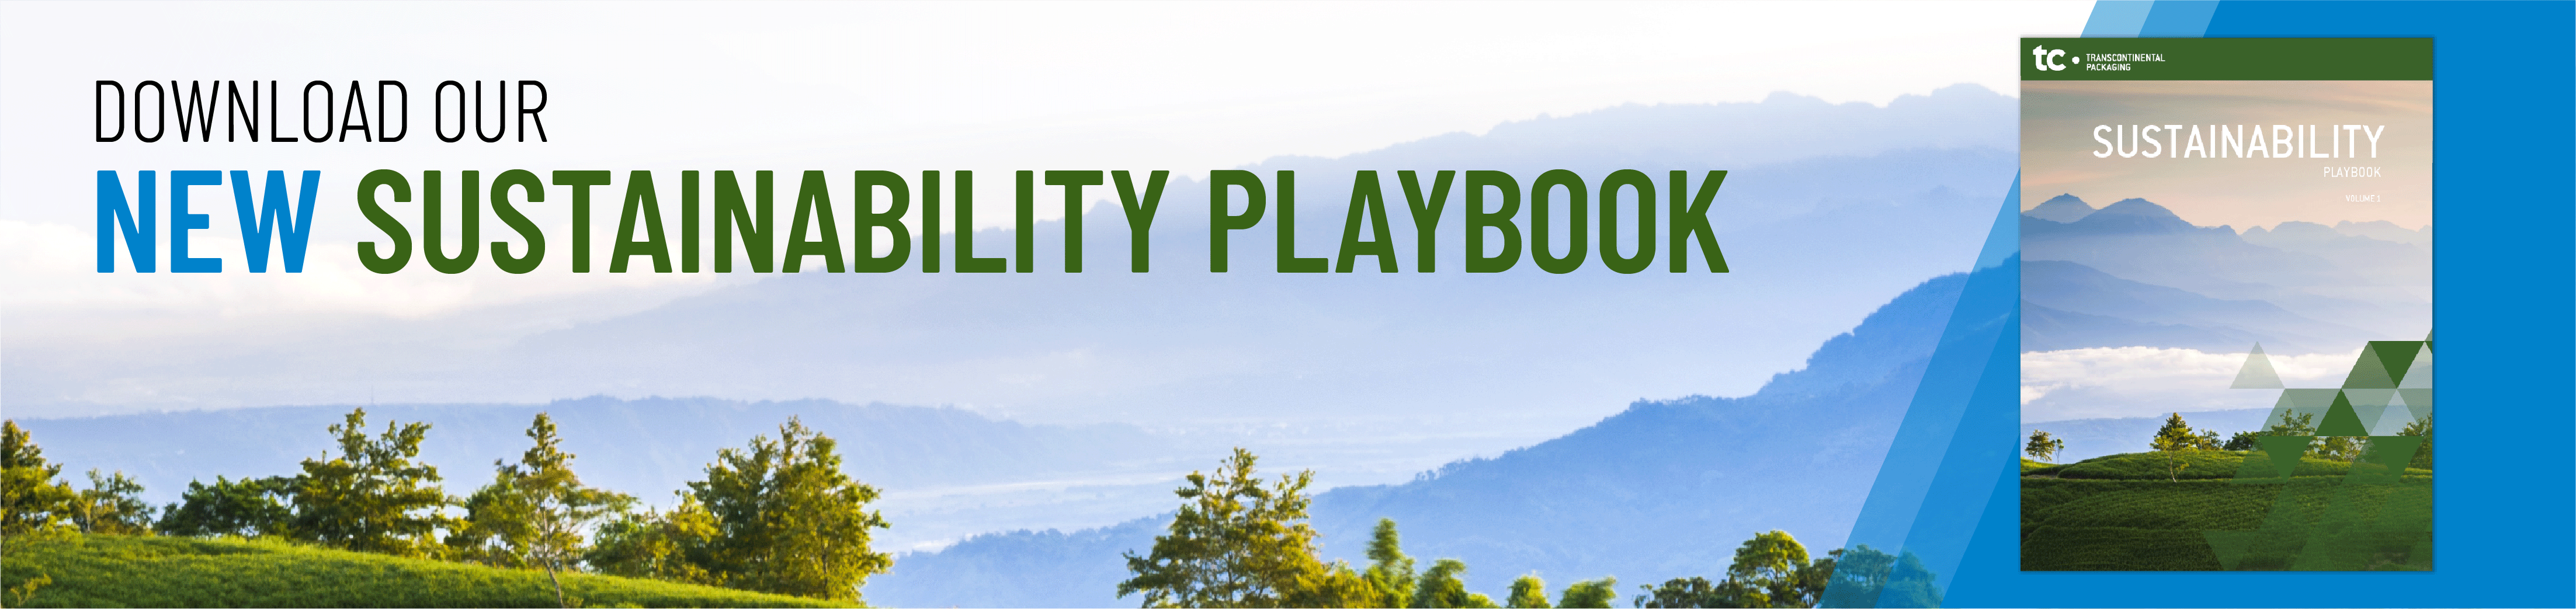 Sustainability Playbook - TC Transcontinental